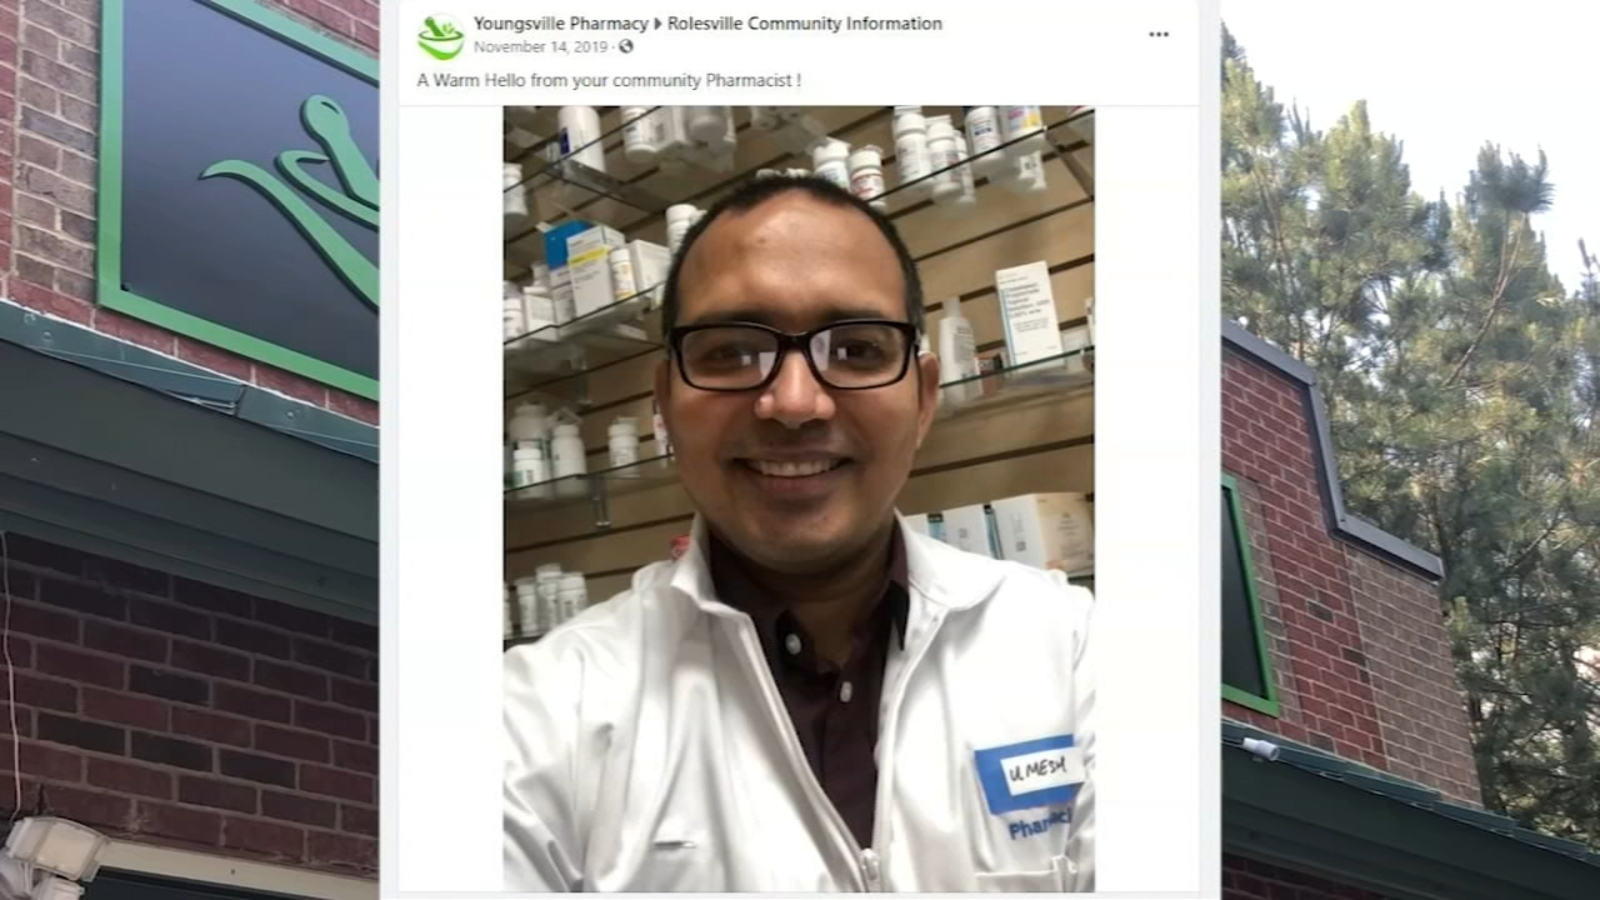 Youngsville pharmacist faces online backlash for confrontational approach to vaccine resistance